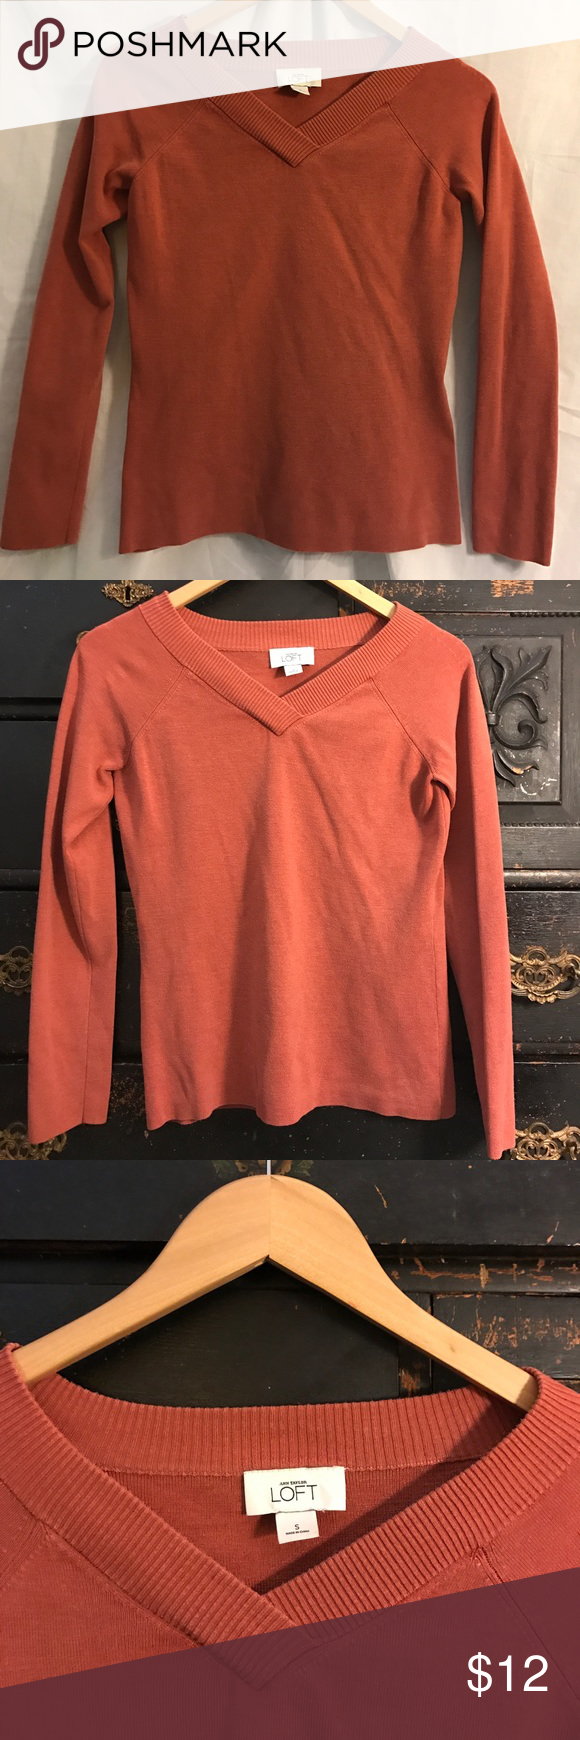 LOFT Orange V-Neck Sweater | Ann taylor loft, Neckline and Autumn